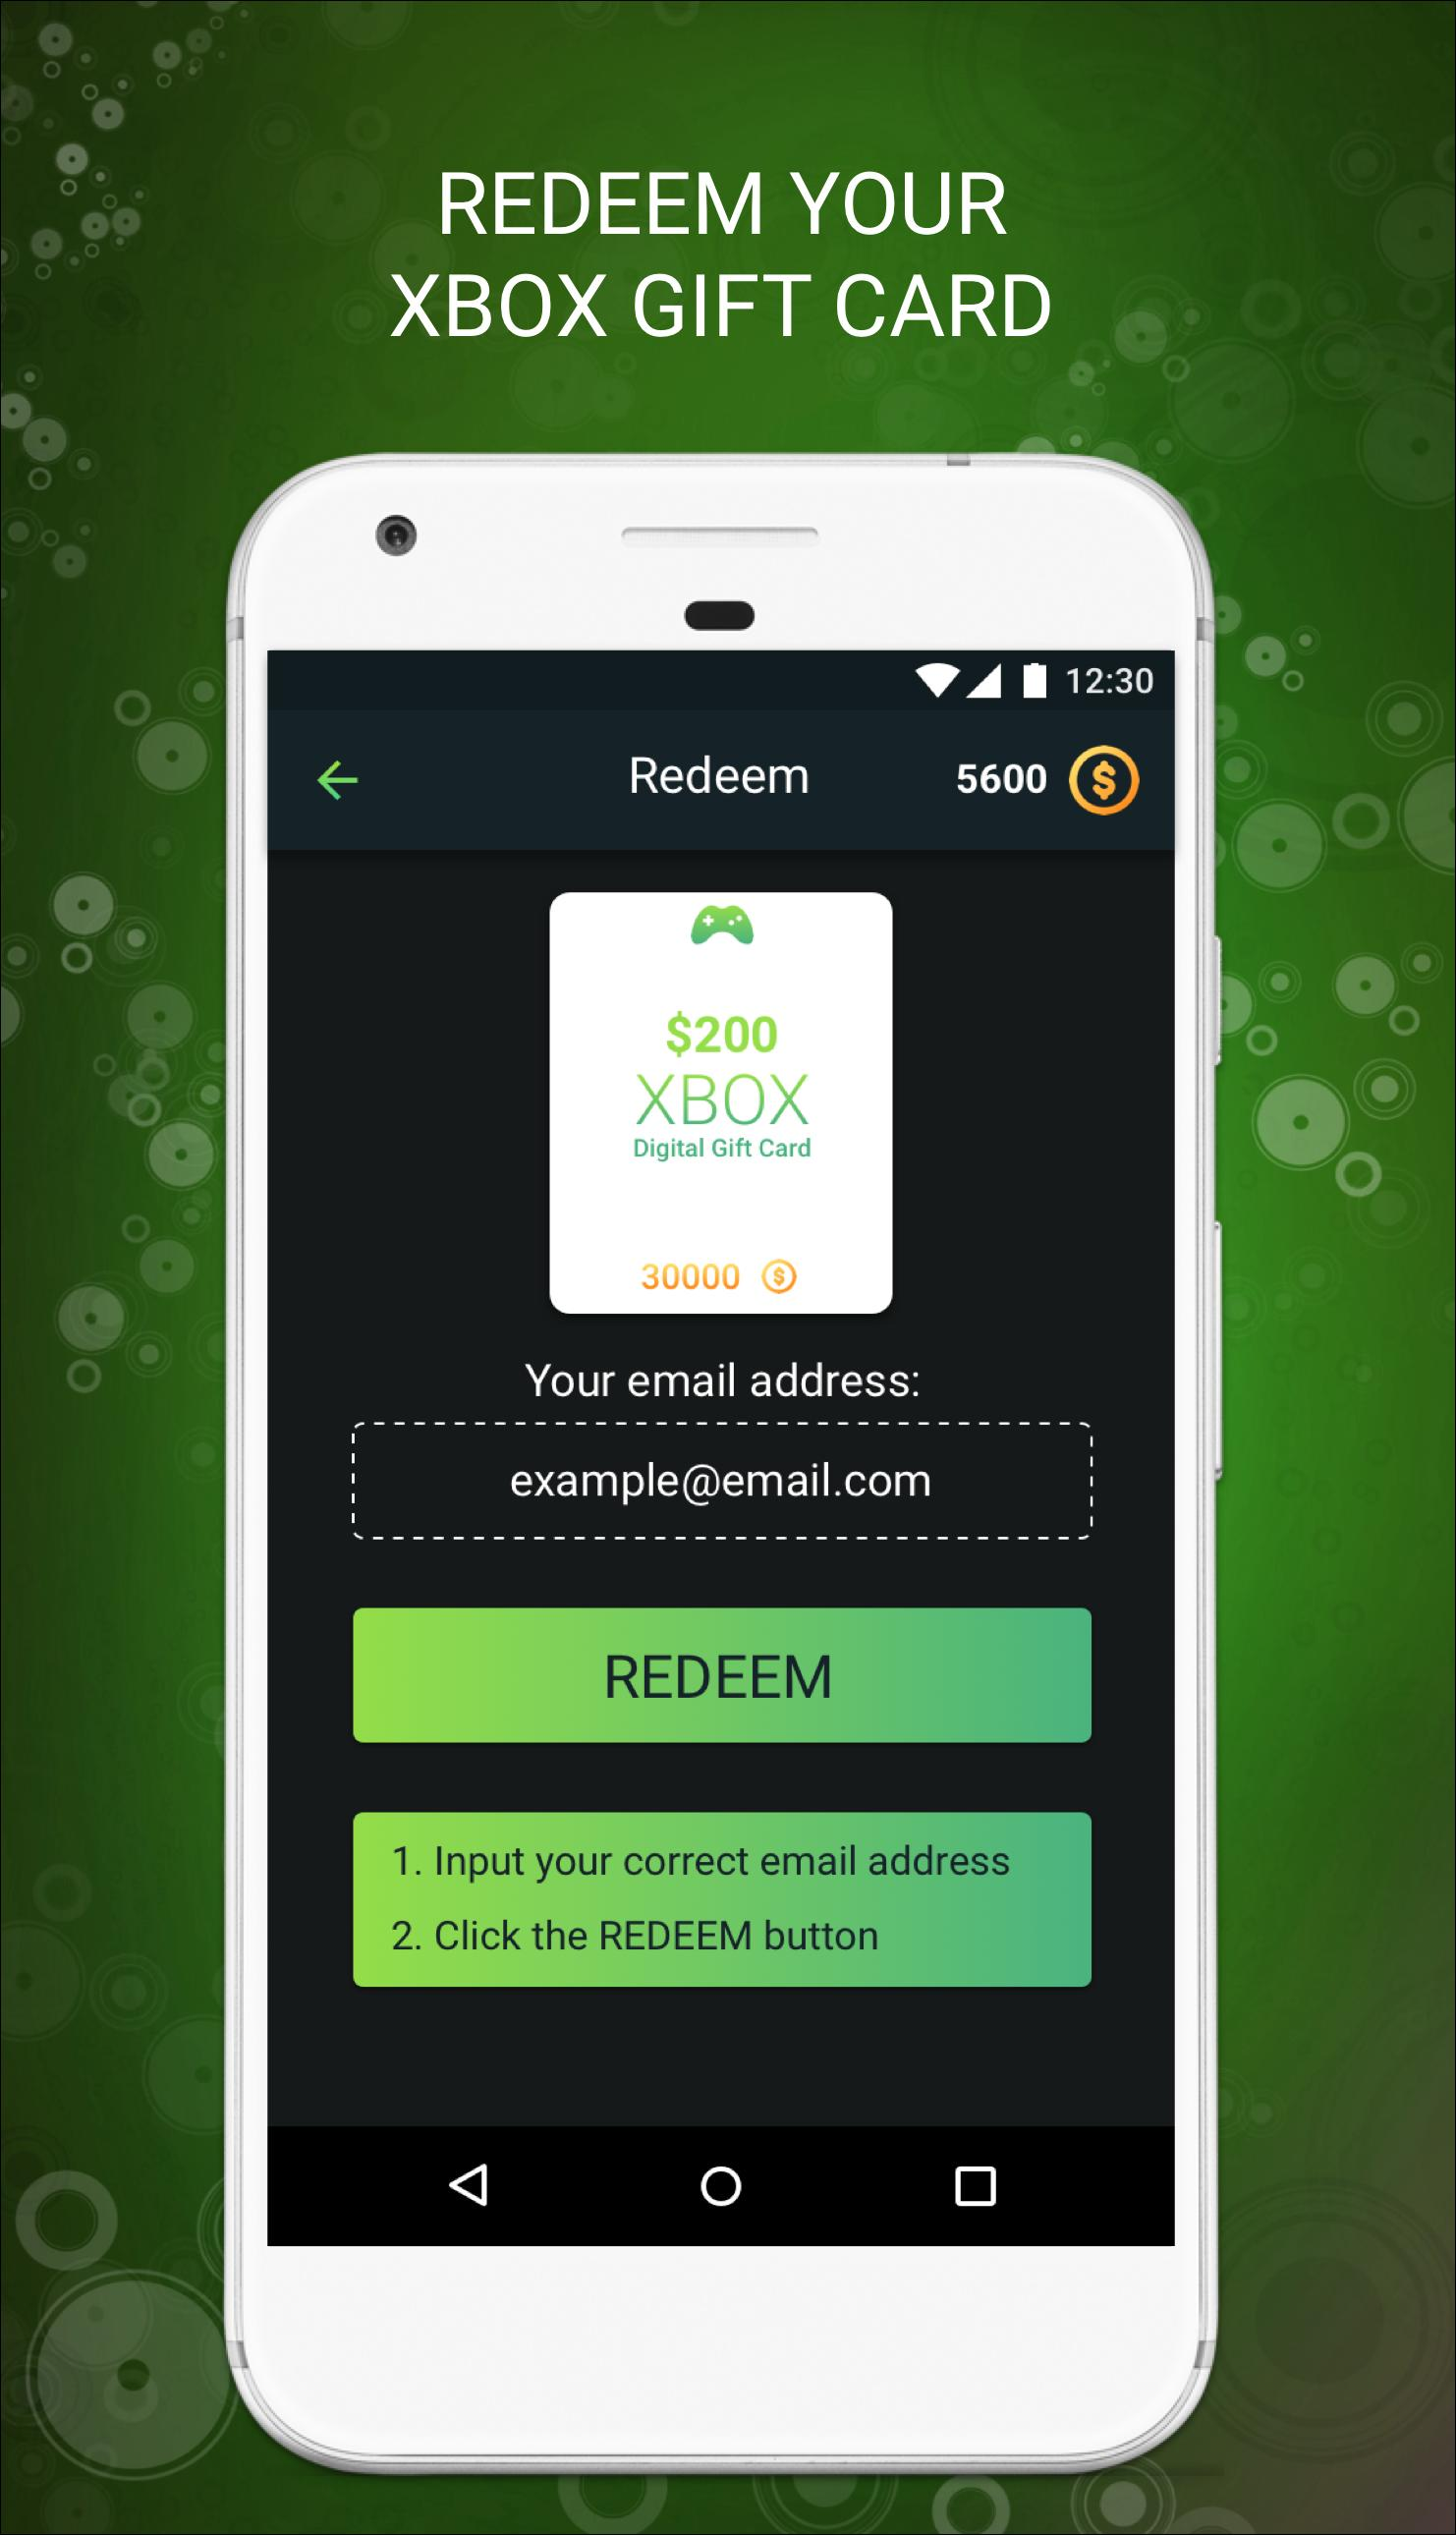 Get Free Xbox Gold Codes free xbox gift cards & live gold for android - apk download